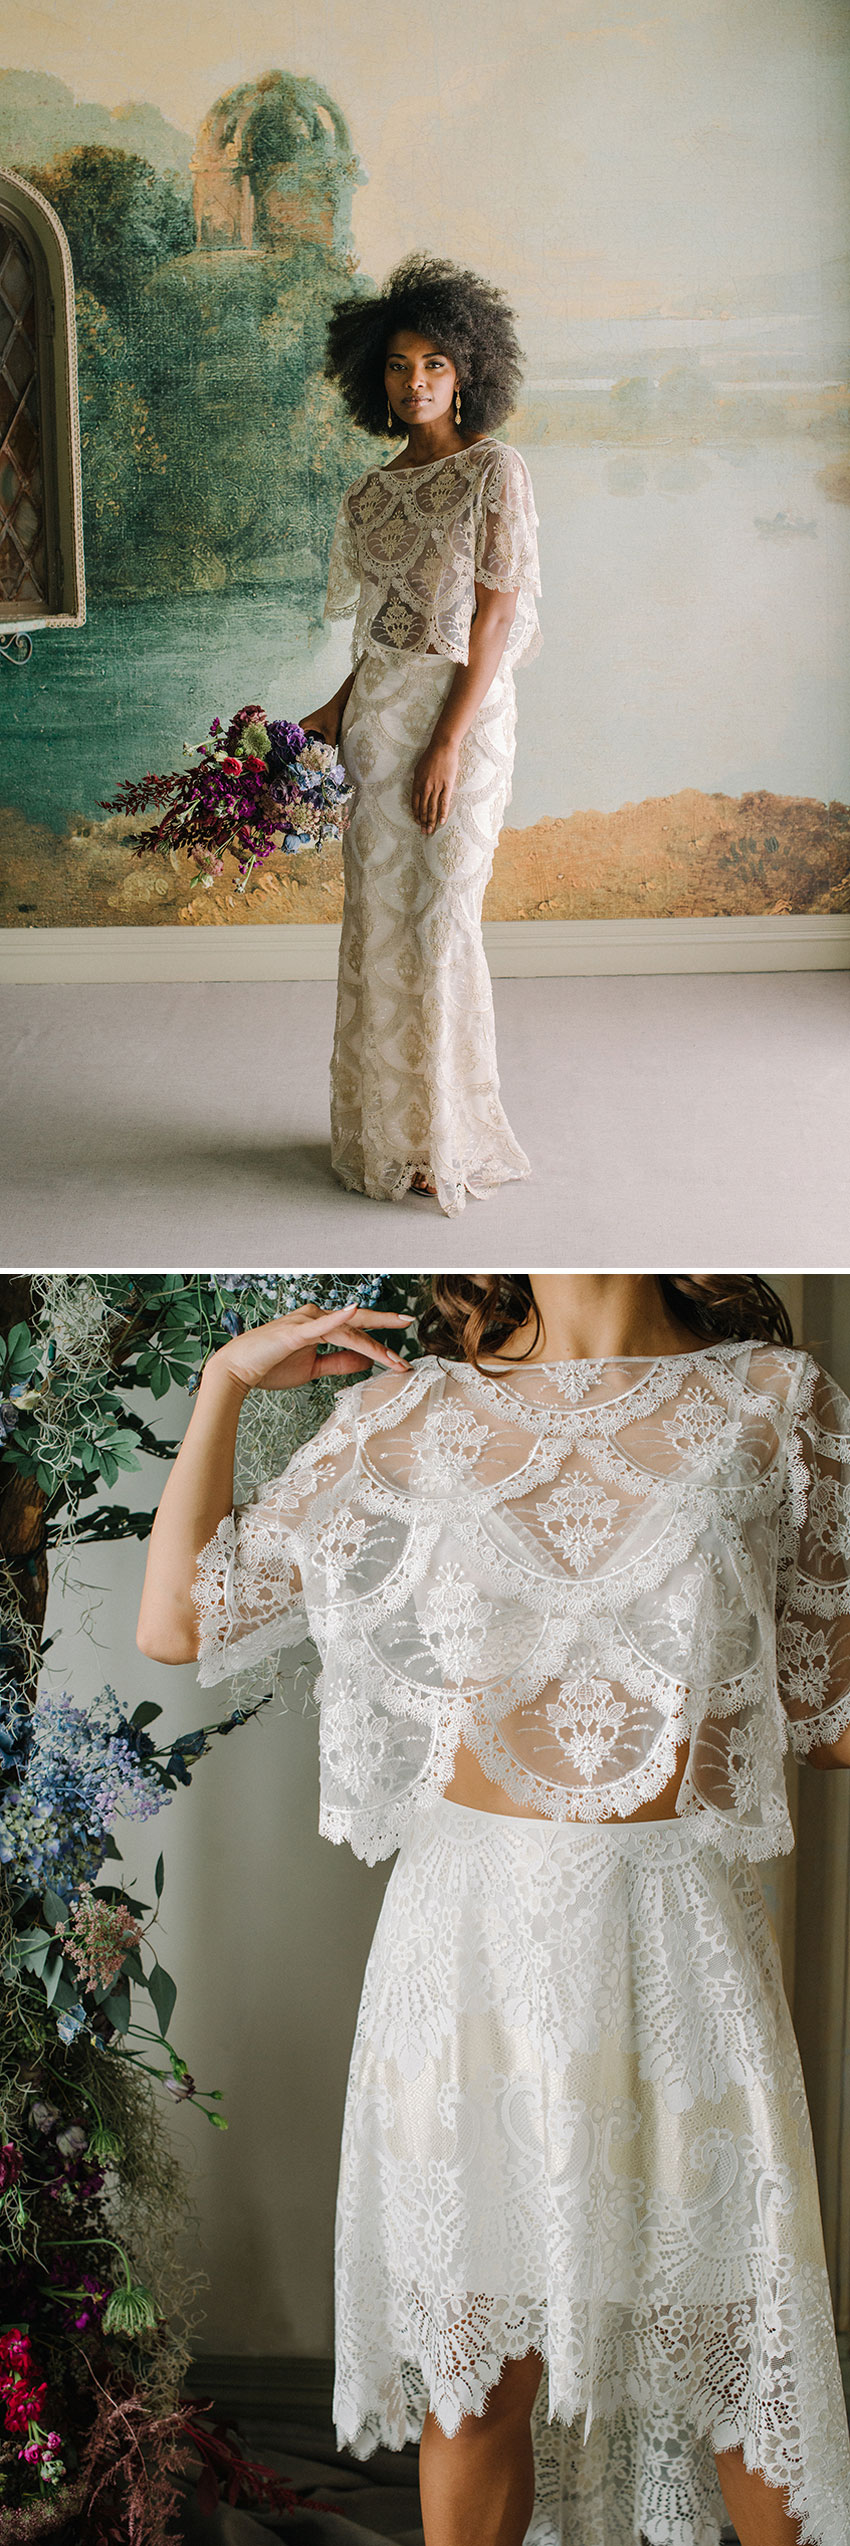 Claire Pettibone unvelis Ready to Wed collection includes the designer's signature laces in Perfect Wedding Magazine